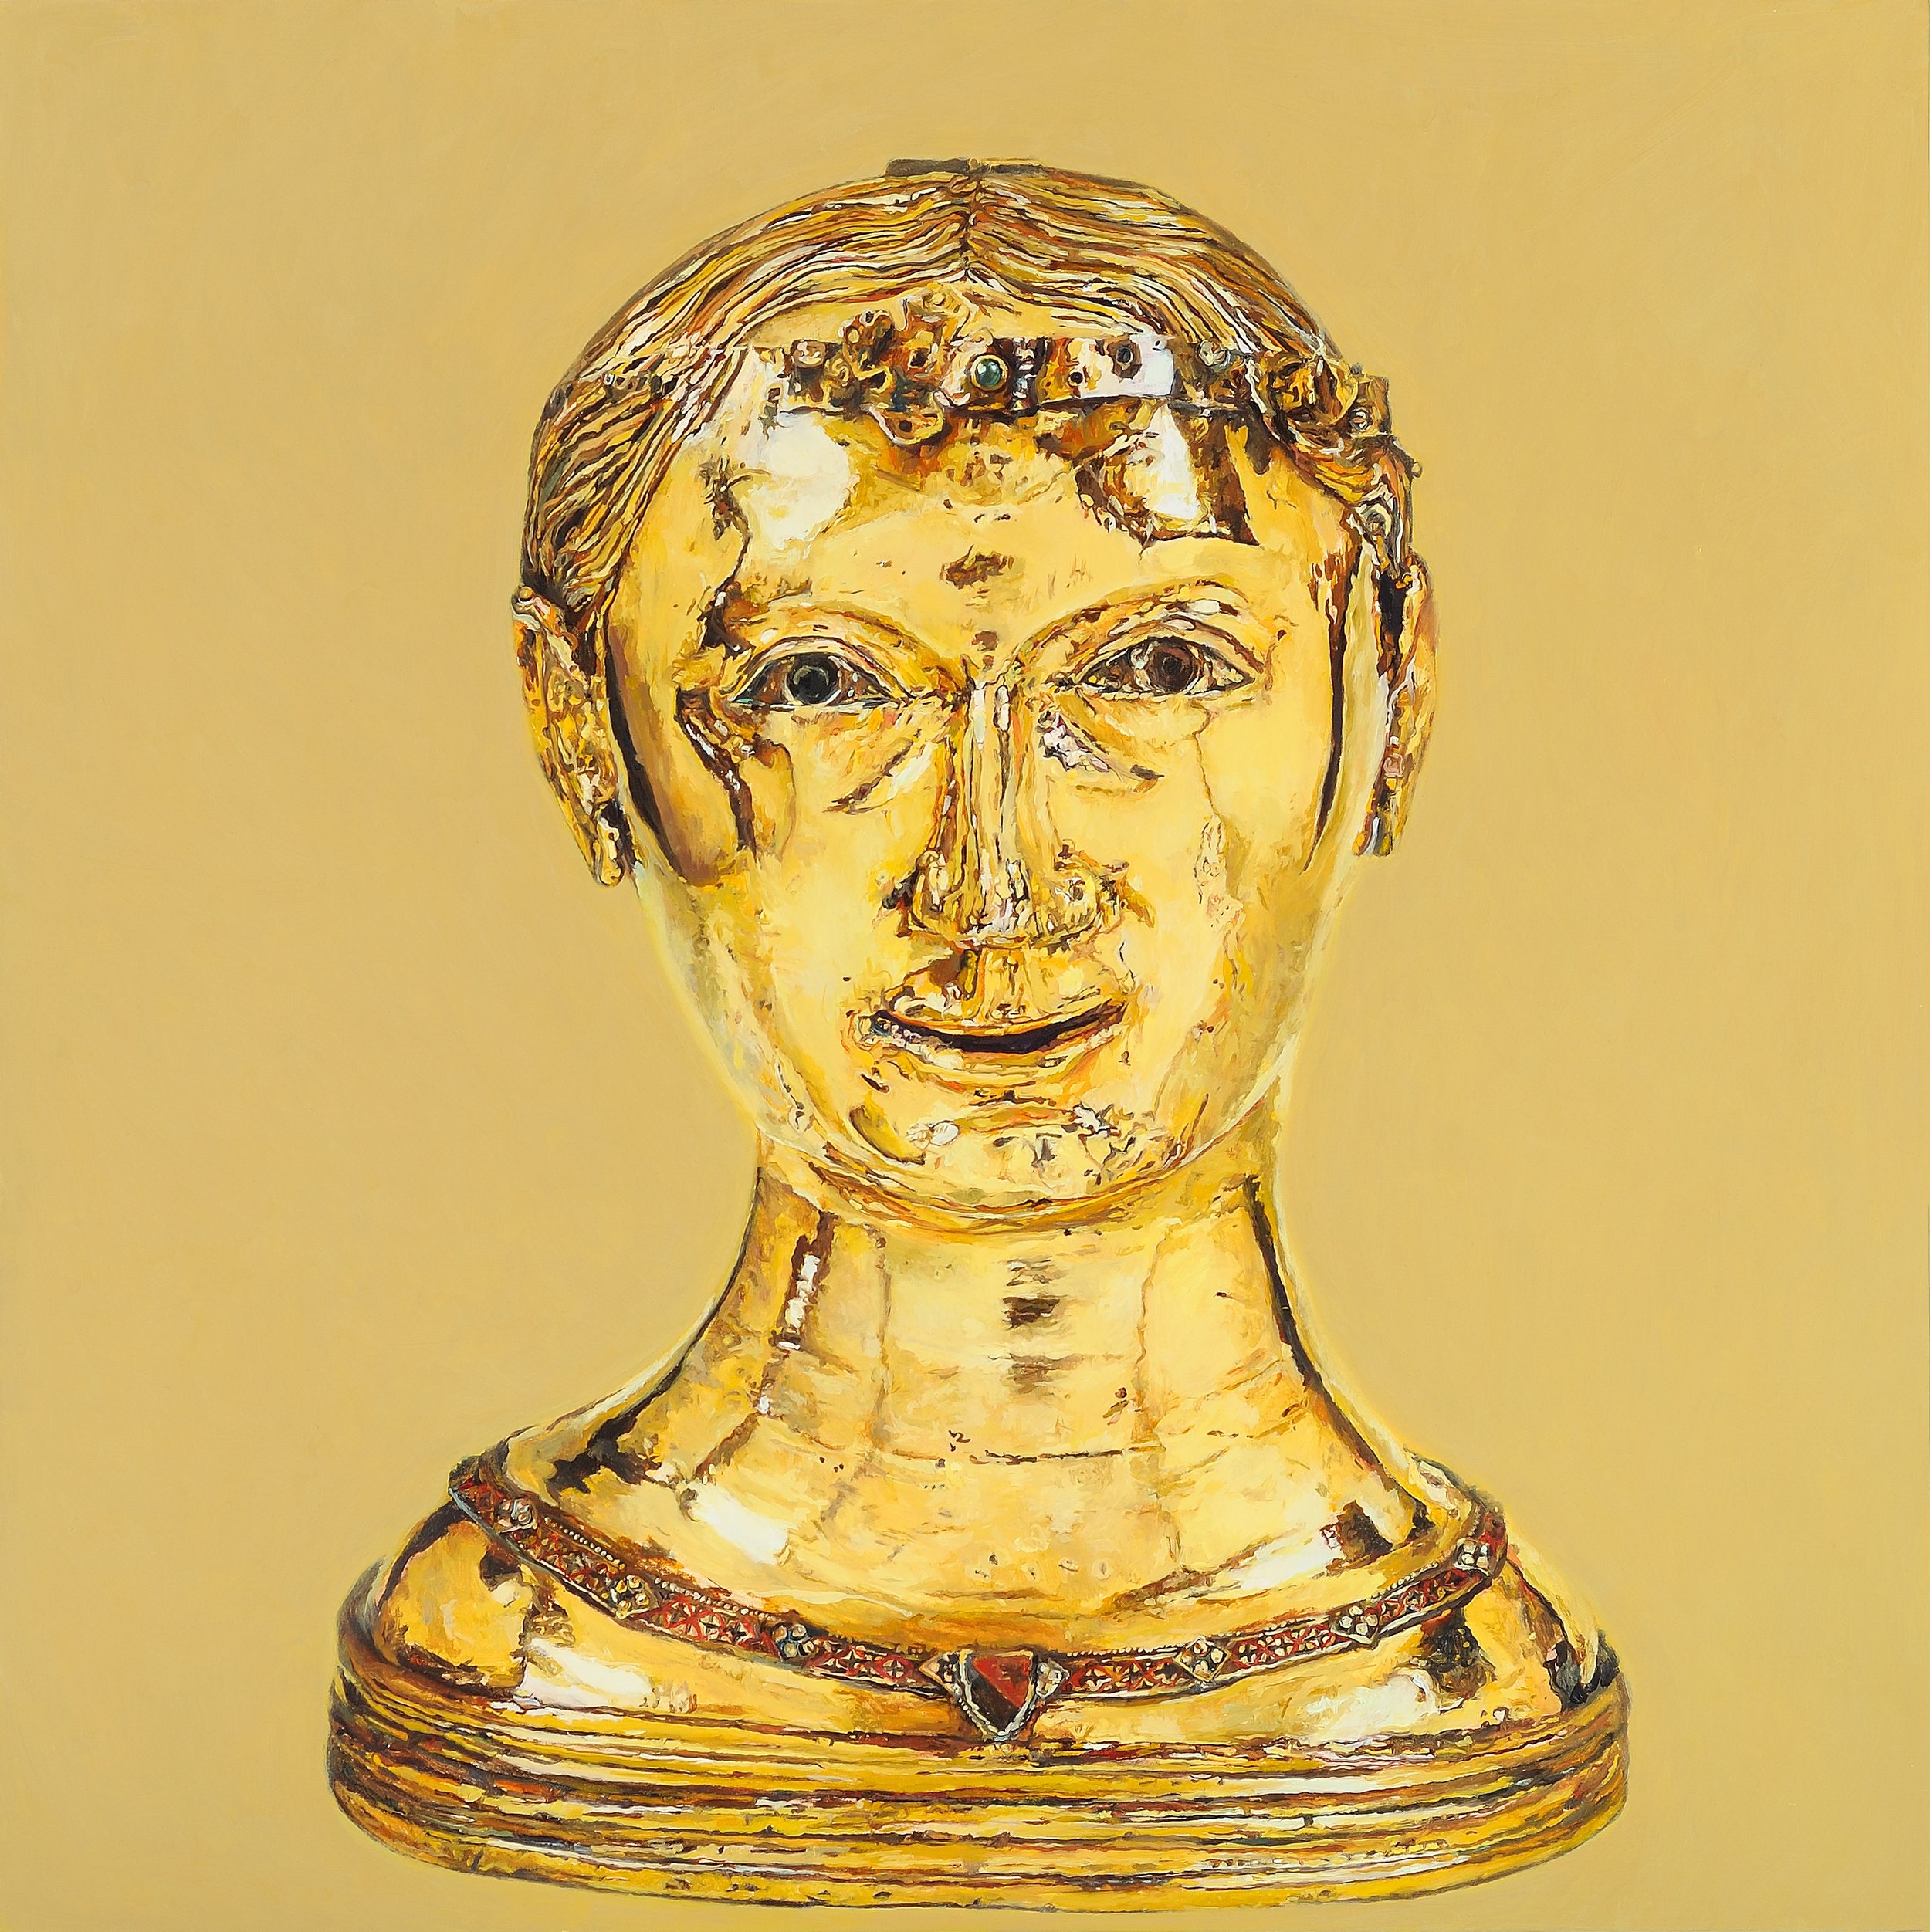 St Thecla, Bust Reliquary from the Upper Rhineland, 2010 (3)